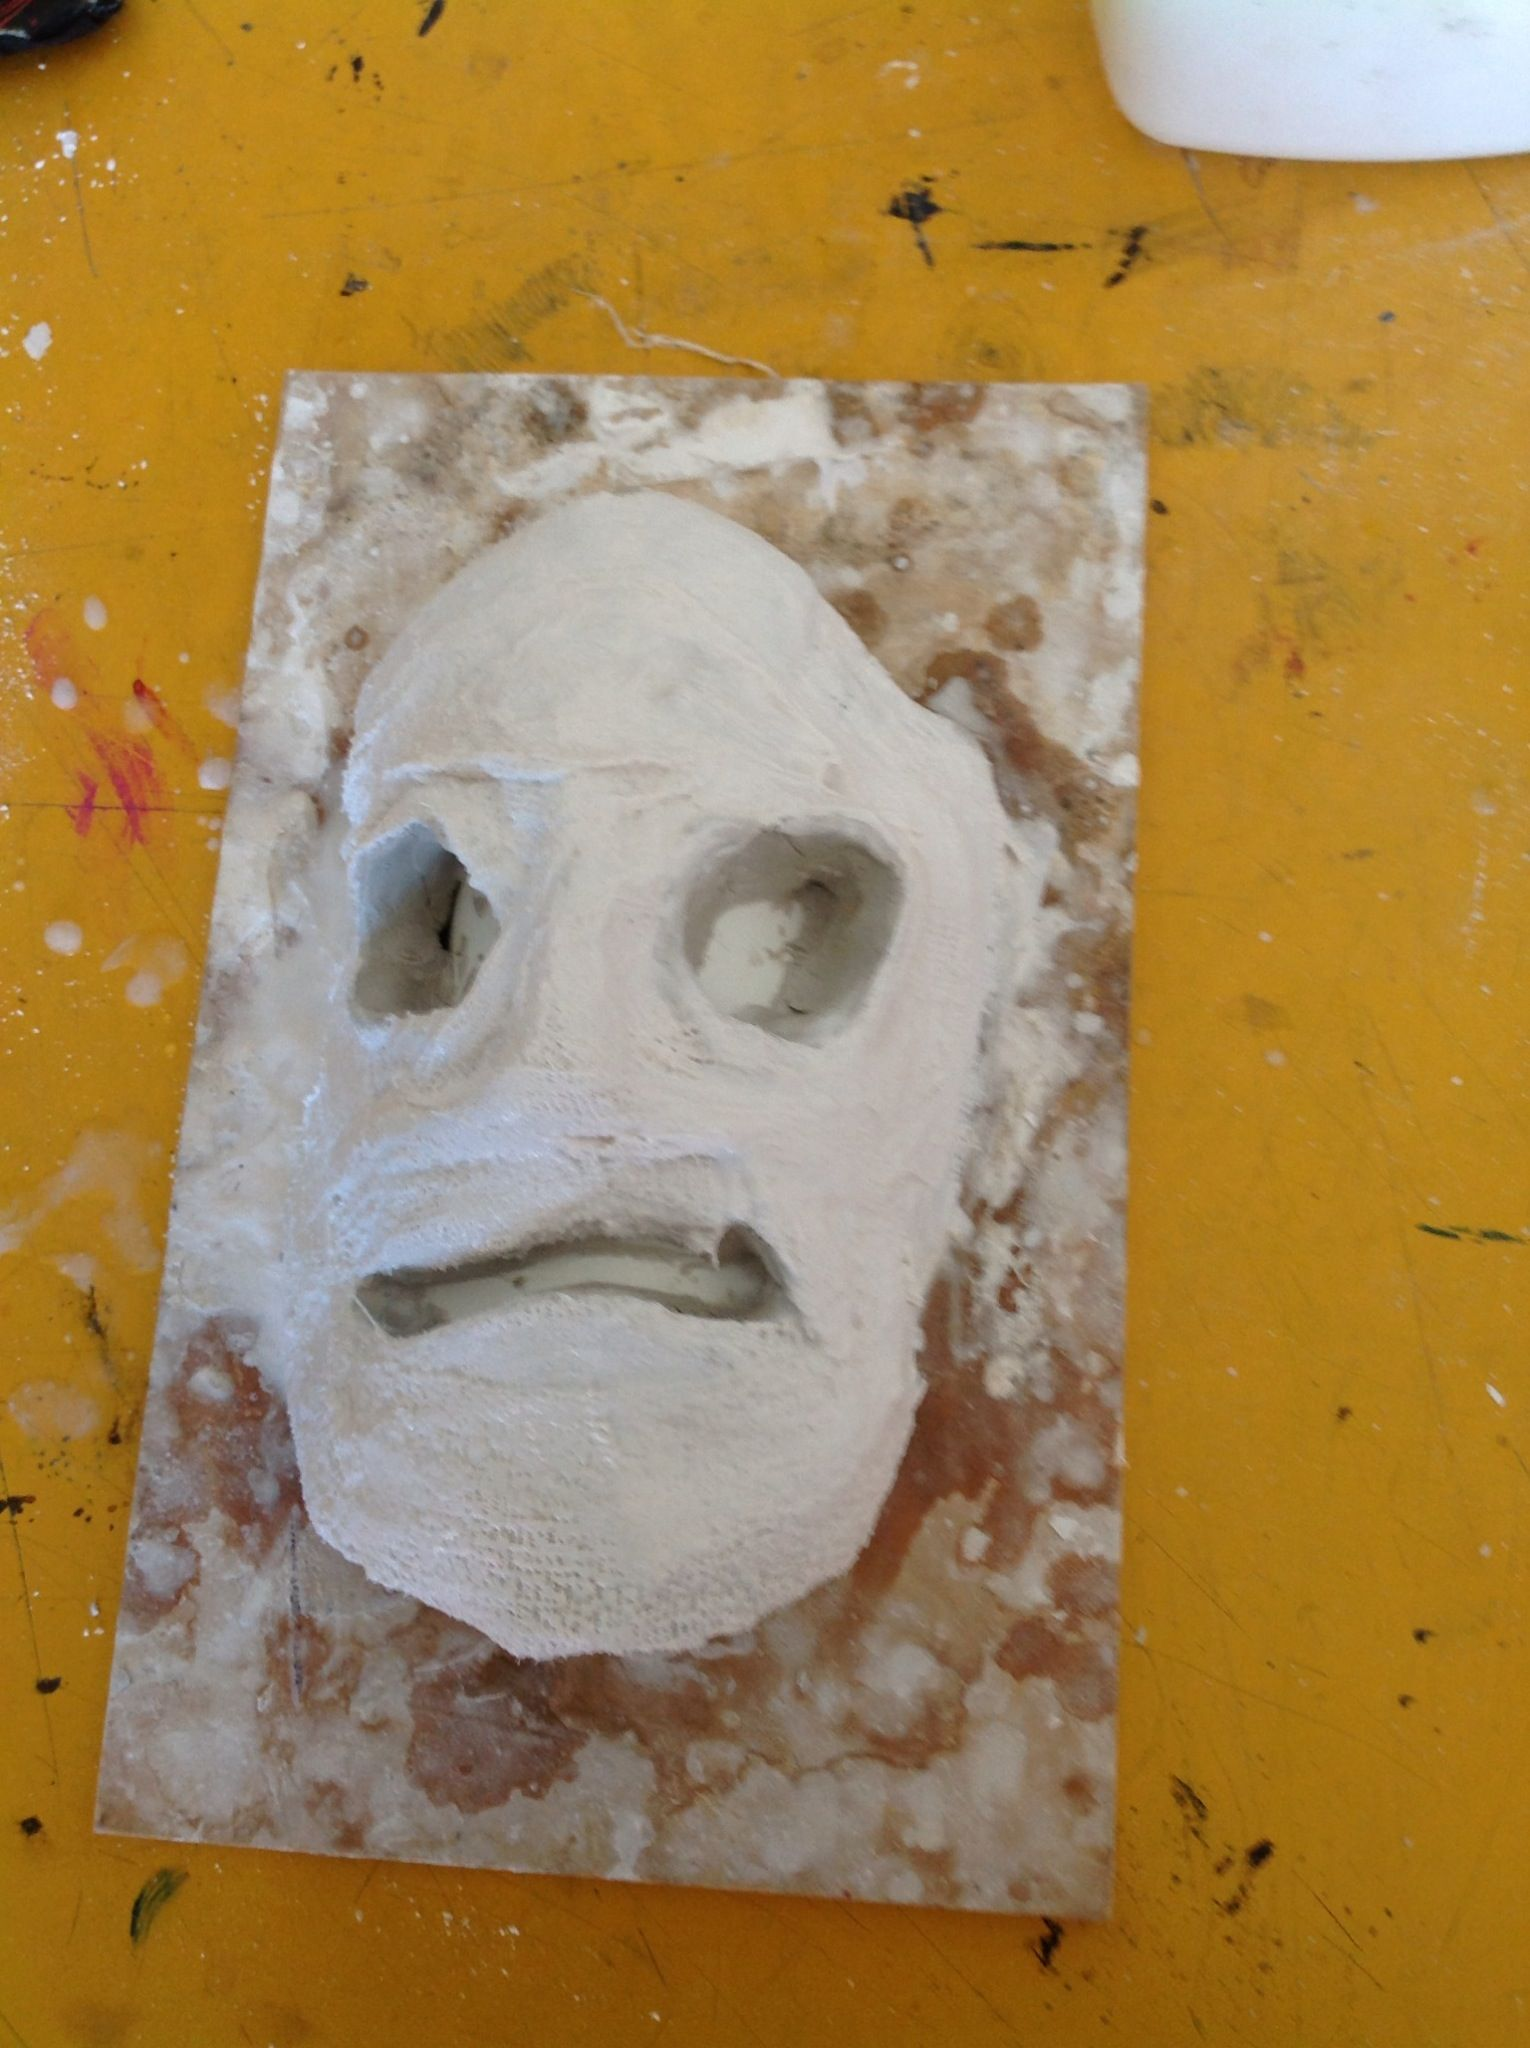 My snapguide explaining 'How to Make a Plaster Mask.'